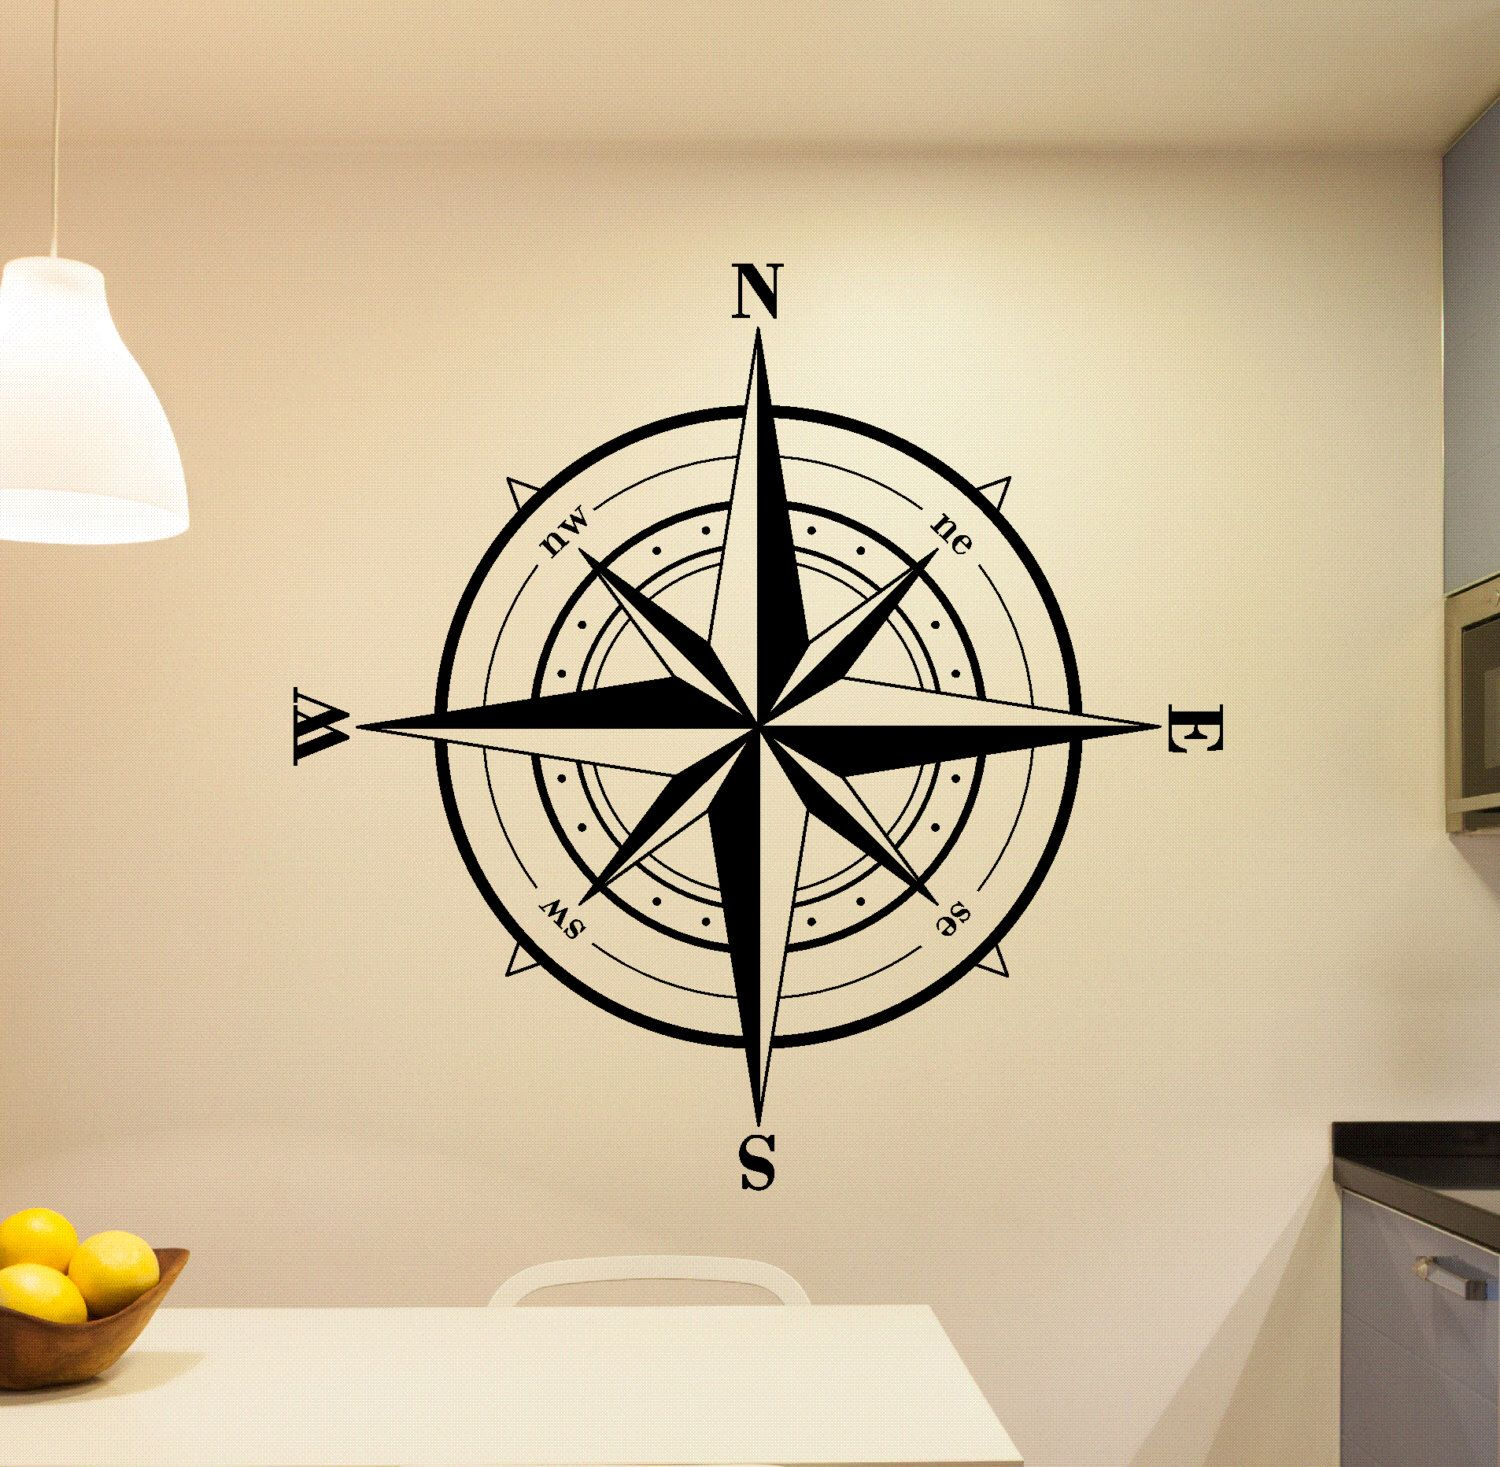 pass Wall Decal pass Decal